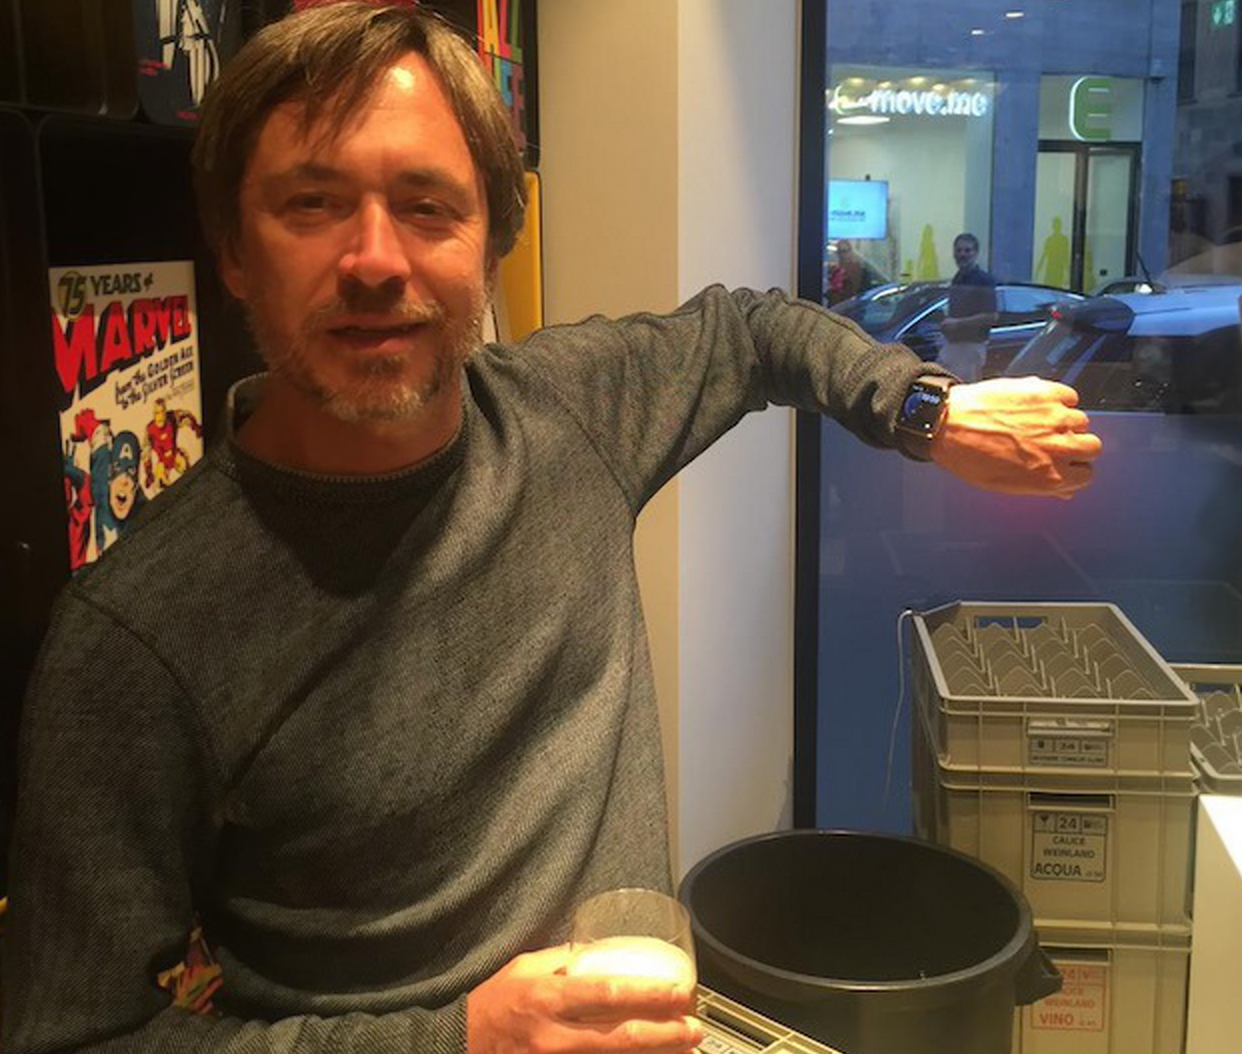 Marc Newson has ultra-high hopes for the Apple Watch